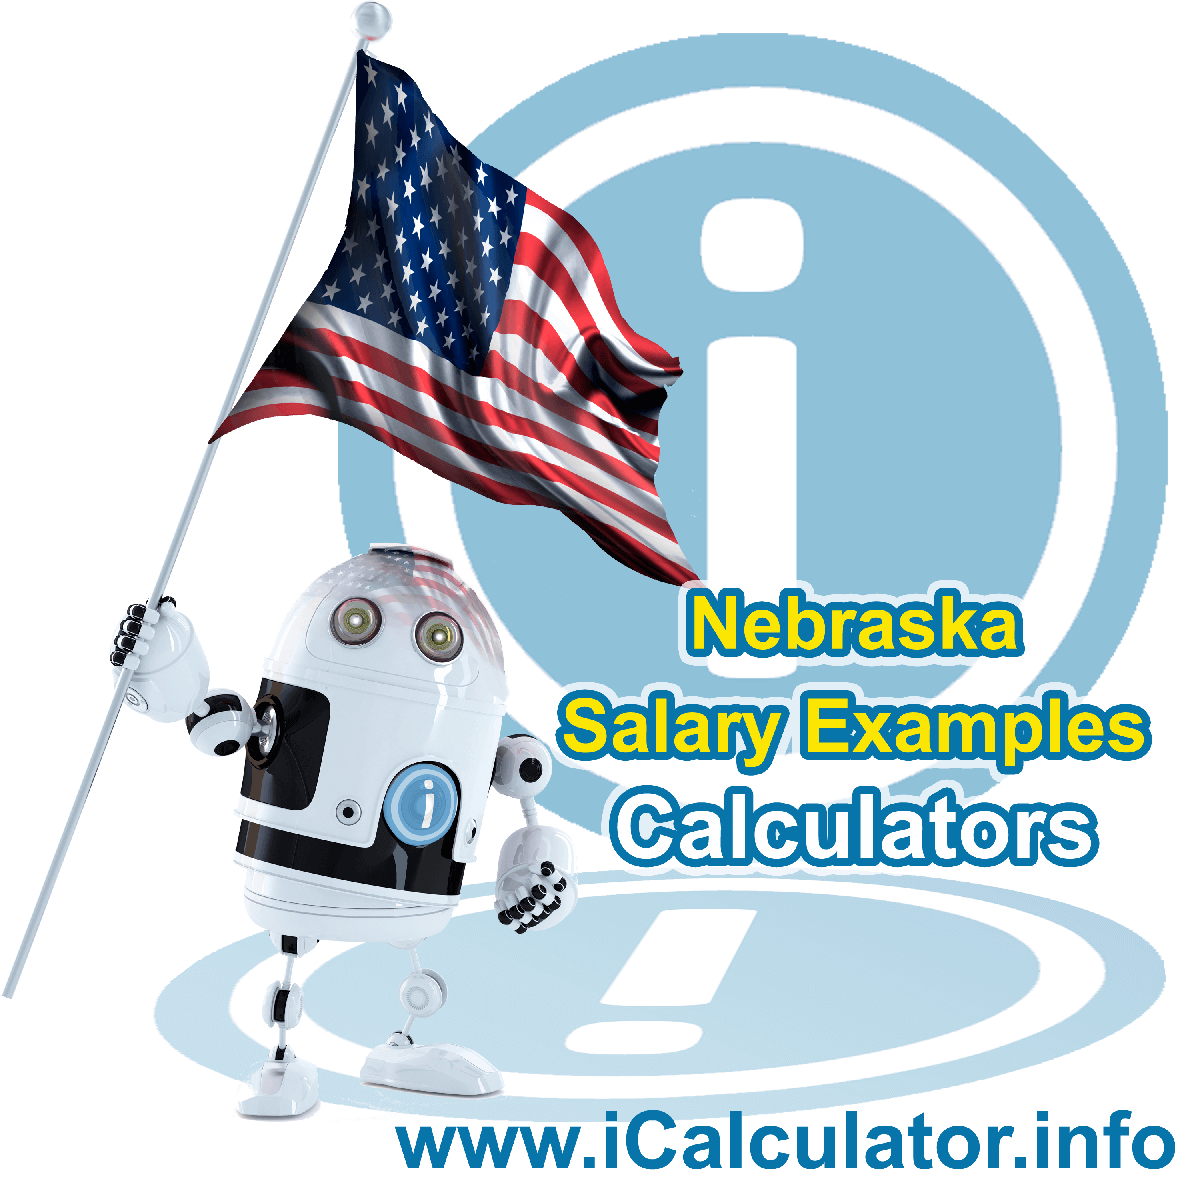 Nebraska Salary Example for $140.00 in 2020 | iCalculator | $140.00 salary example for employee and employer paying Nebraska State tincome taxes. Detailed salary after tax calculation including Nebraska State Tax, Federal State Tax, Medicare Deductions, Social Security, Capital Gains and other income tax and salary deductions complete with supporting Nebraska state tax tables